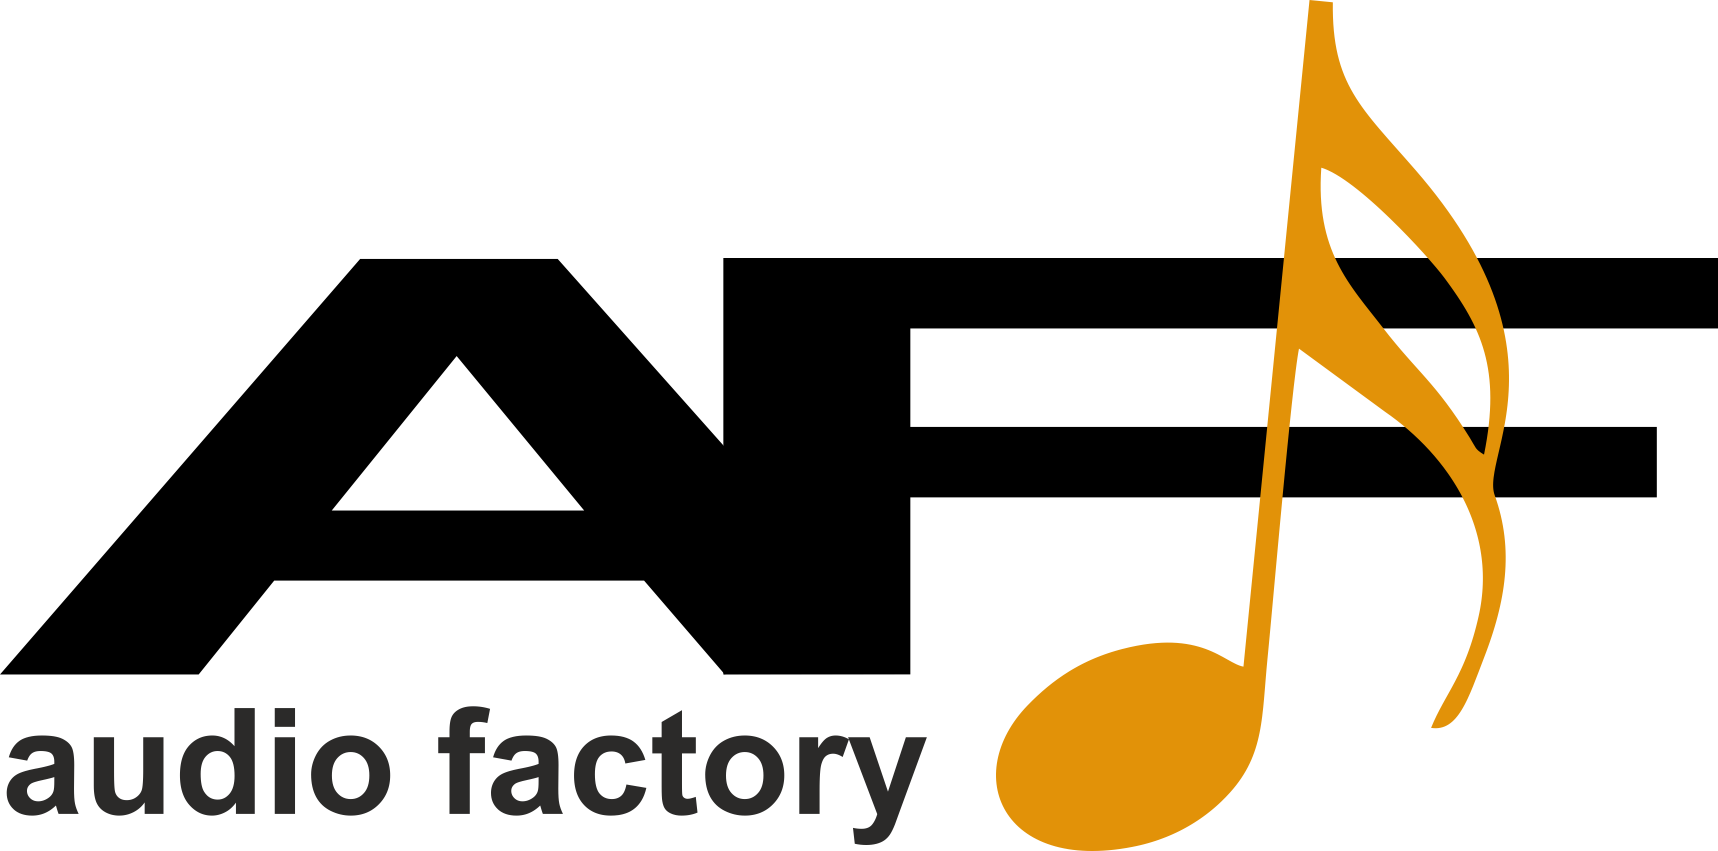 audio-factory_logo